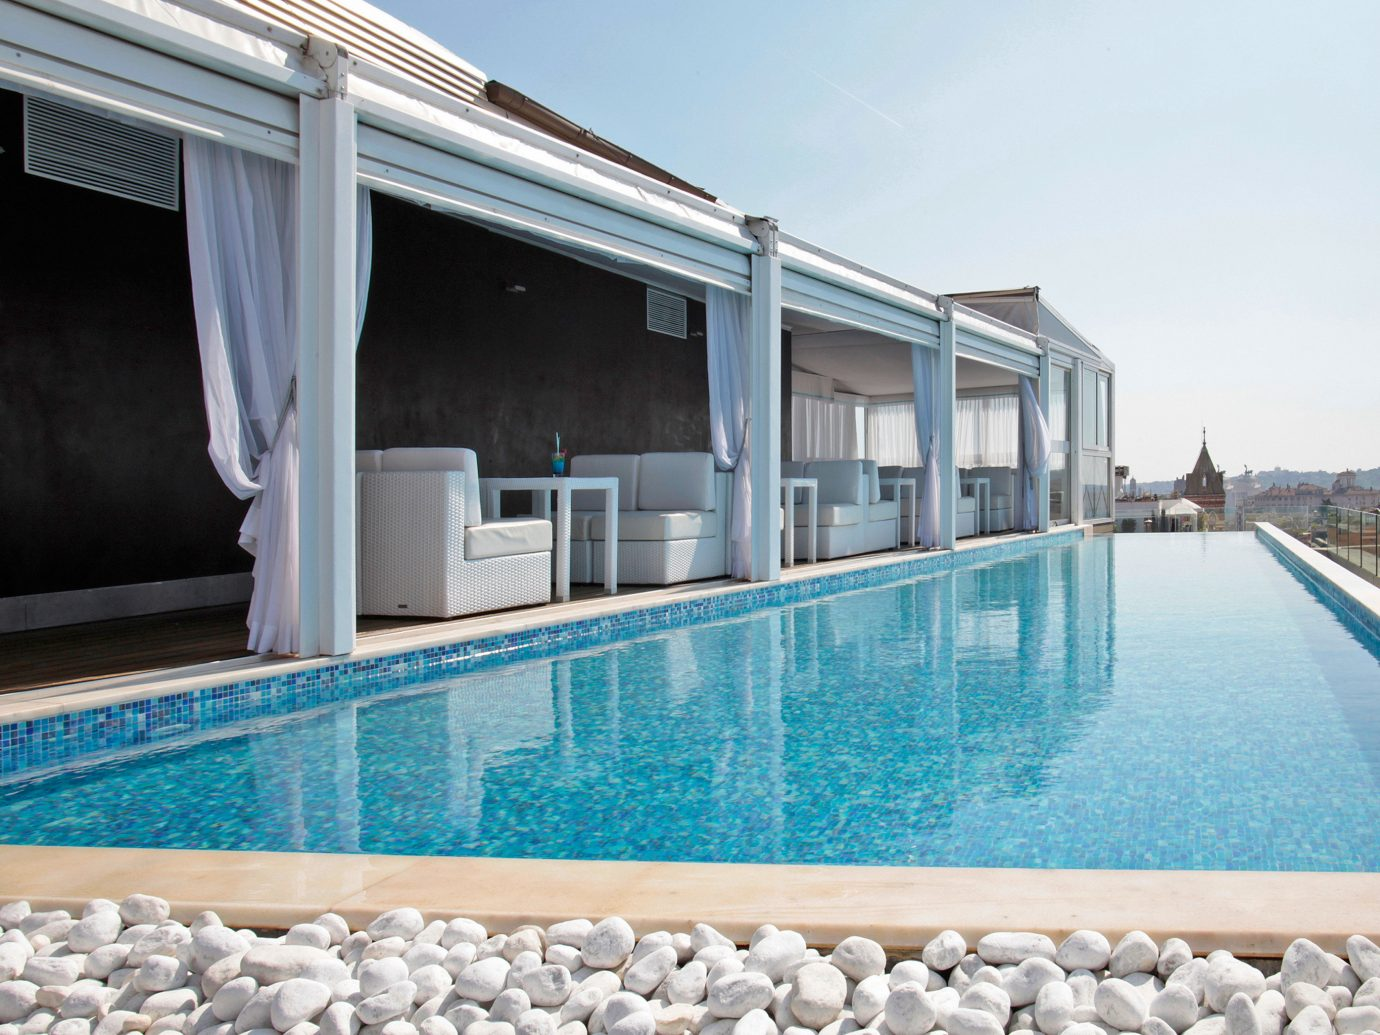 Boutique Hotels City Elegant Italy Luxury Luxury Travel Pool Romantic Hotels Rome Rooftop sky outdoor swimming pool property leisure blue estate Villa Resort home real estate condominium